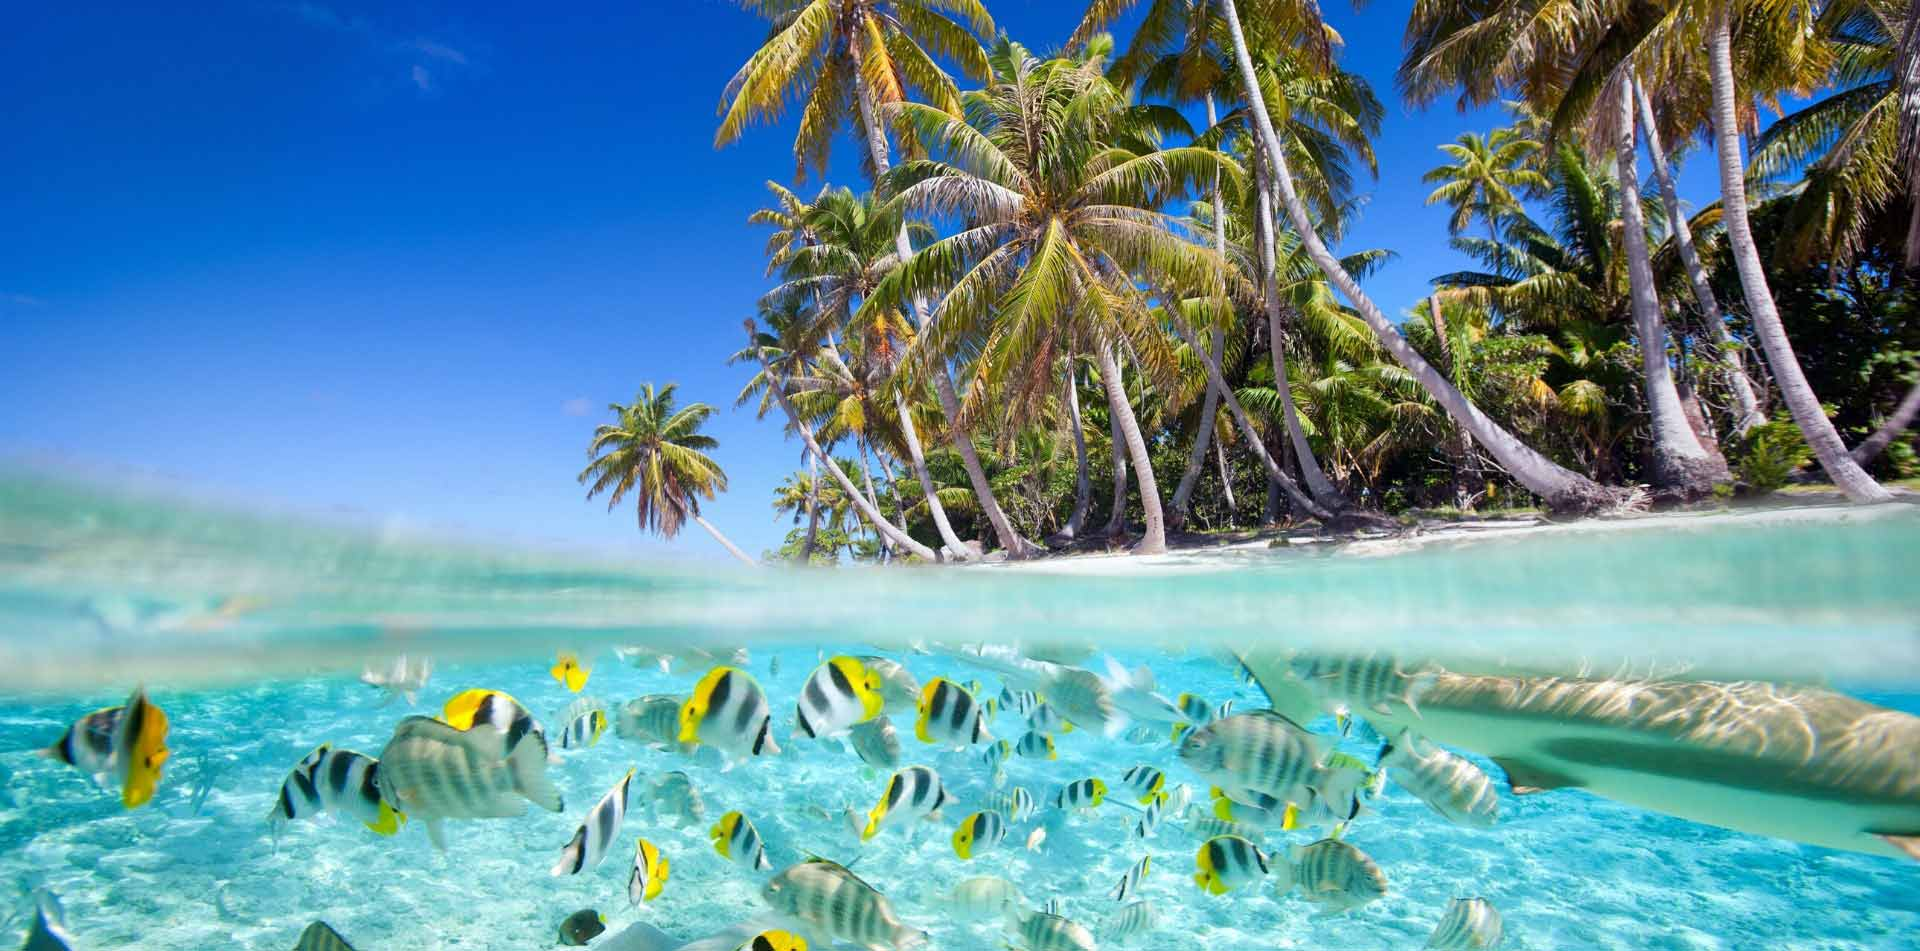 South Pacific Tahiti colorful fish clear water tropical island lush palm trees - luxury vacation destinations